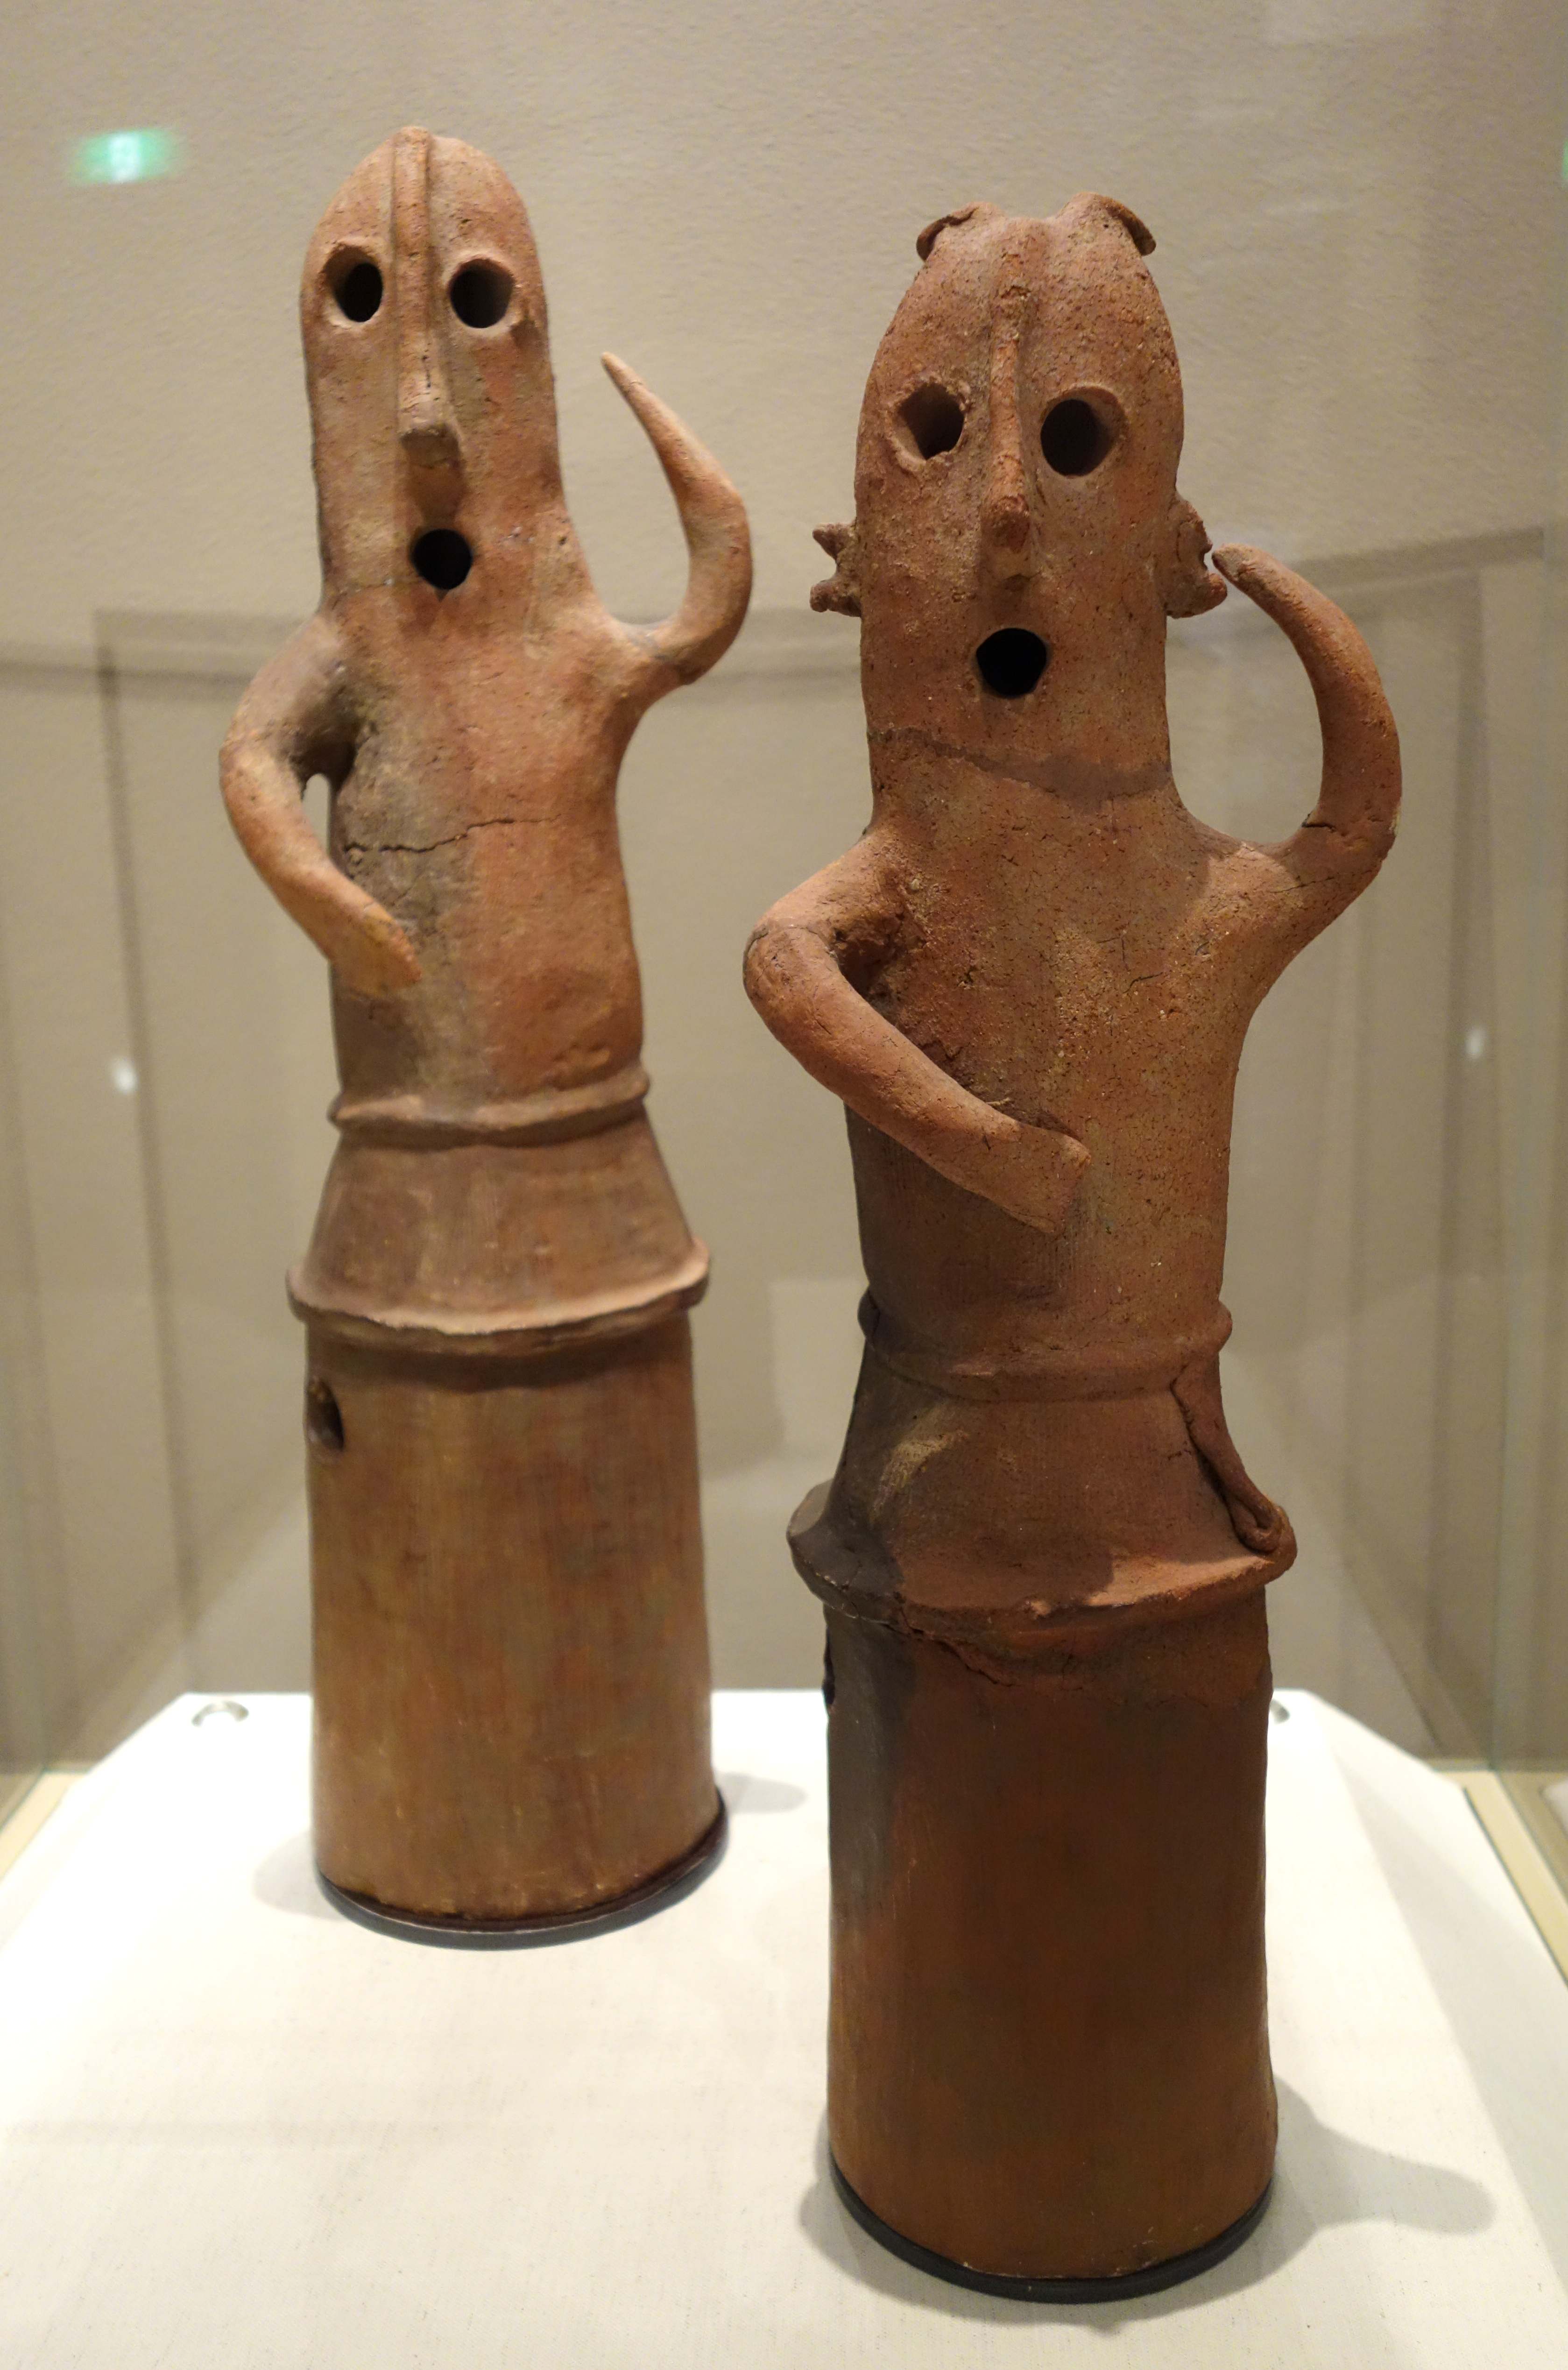 the haniwa of ancient japan For example, the hiroshima peace center--designed in the 1950s by one of japan's most famous architects, kenzo tange, combines the le corbusier style of modernist architecture along with the ancient form of the haniwa, evident in the design of the traditional tombs of the rulers of old japan.